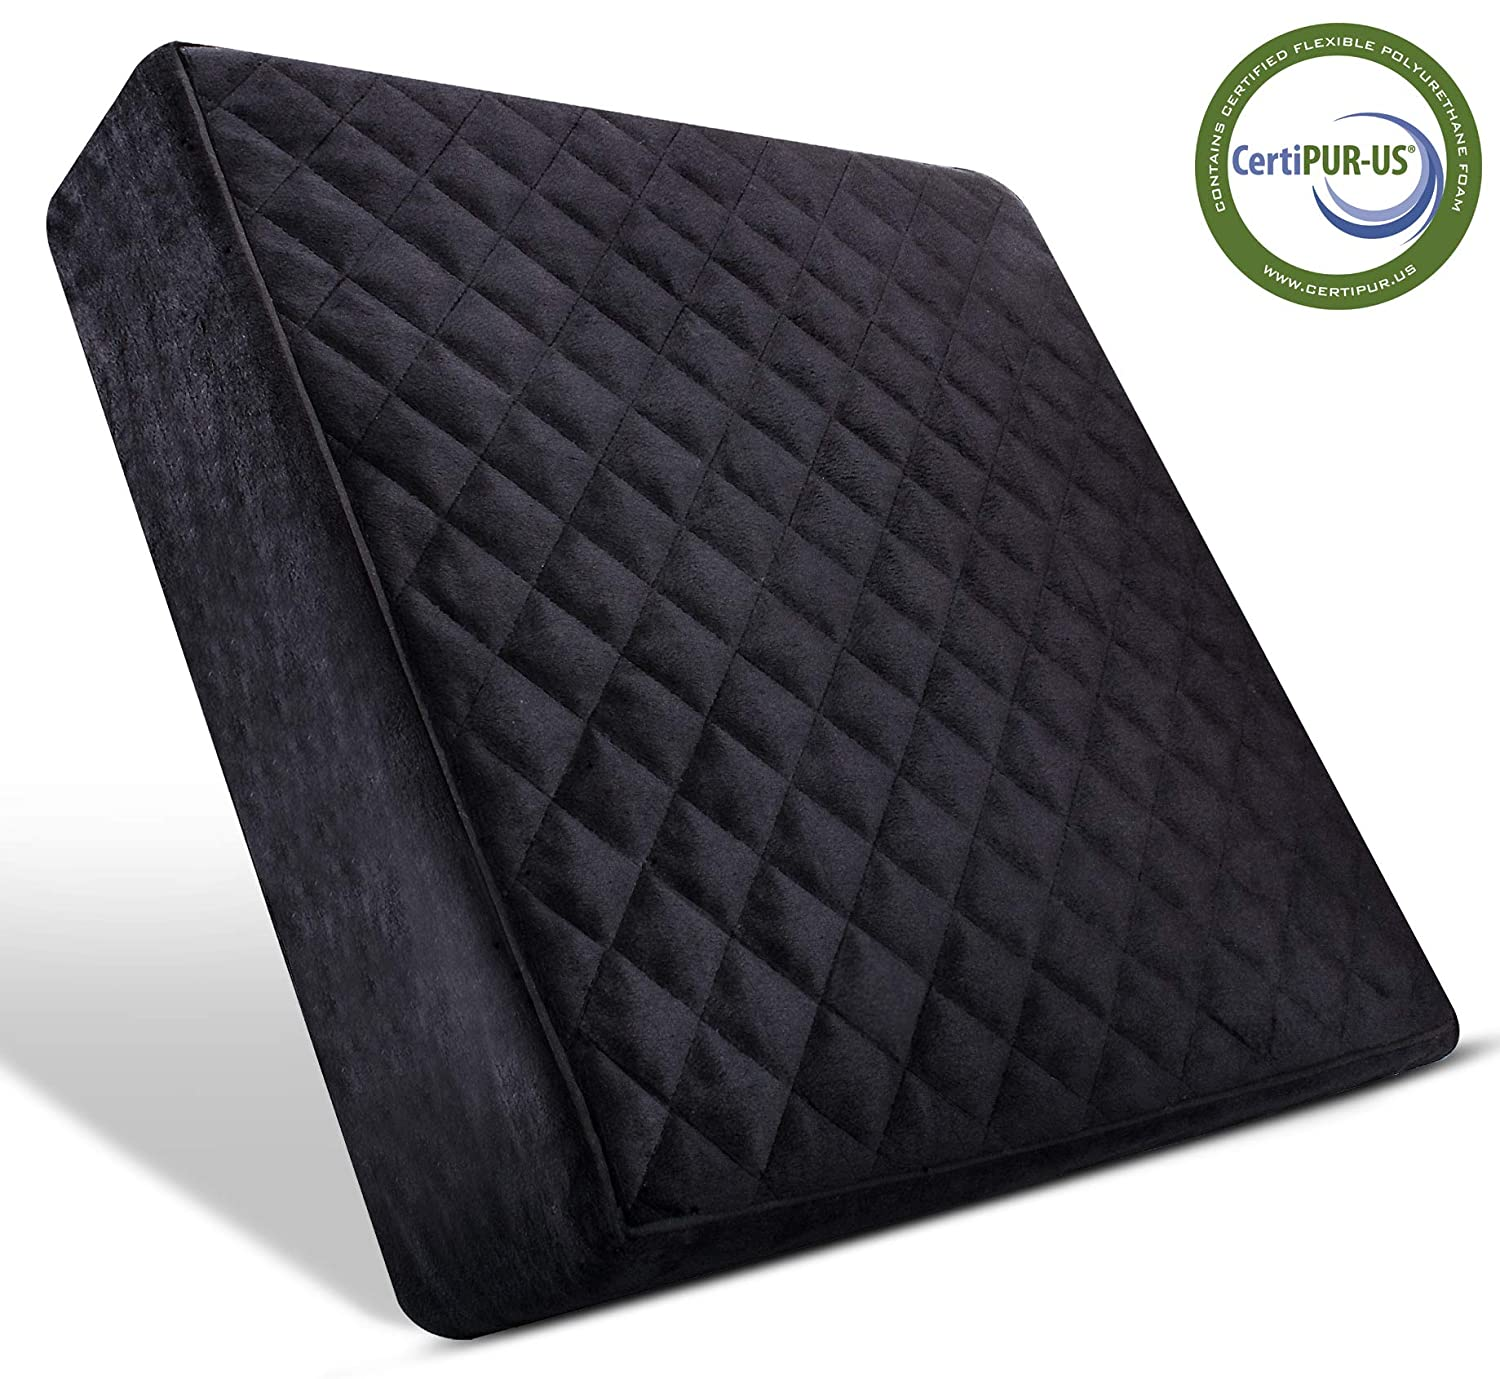 "Comfortanza Chair Seat Cushion - 16""X16""X3"" Square Thick Foam Pads for Wooden Kitchen Dining Chairs, Office & Car Seat - Booster Cushion - Comfort & Back Pain Relief - Black"